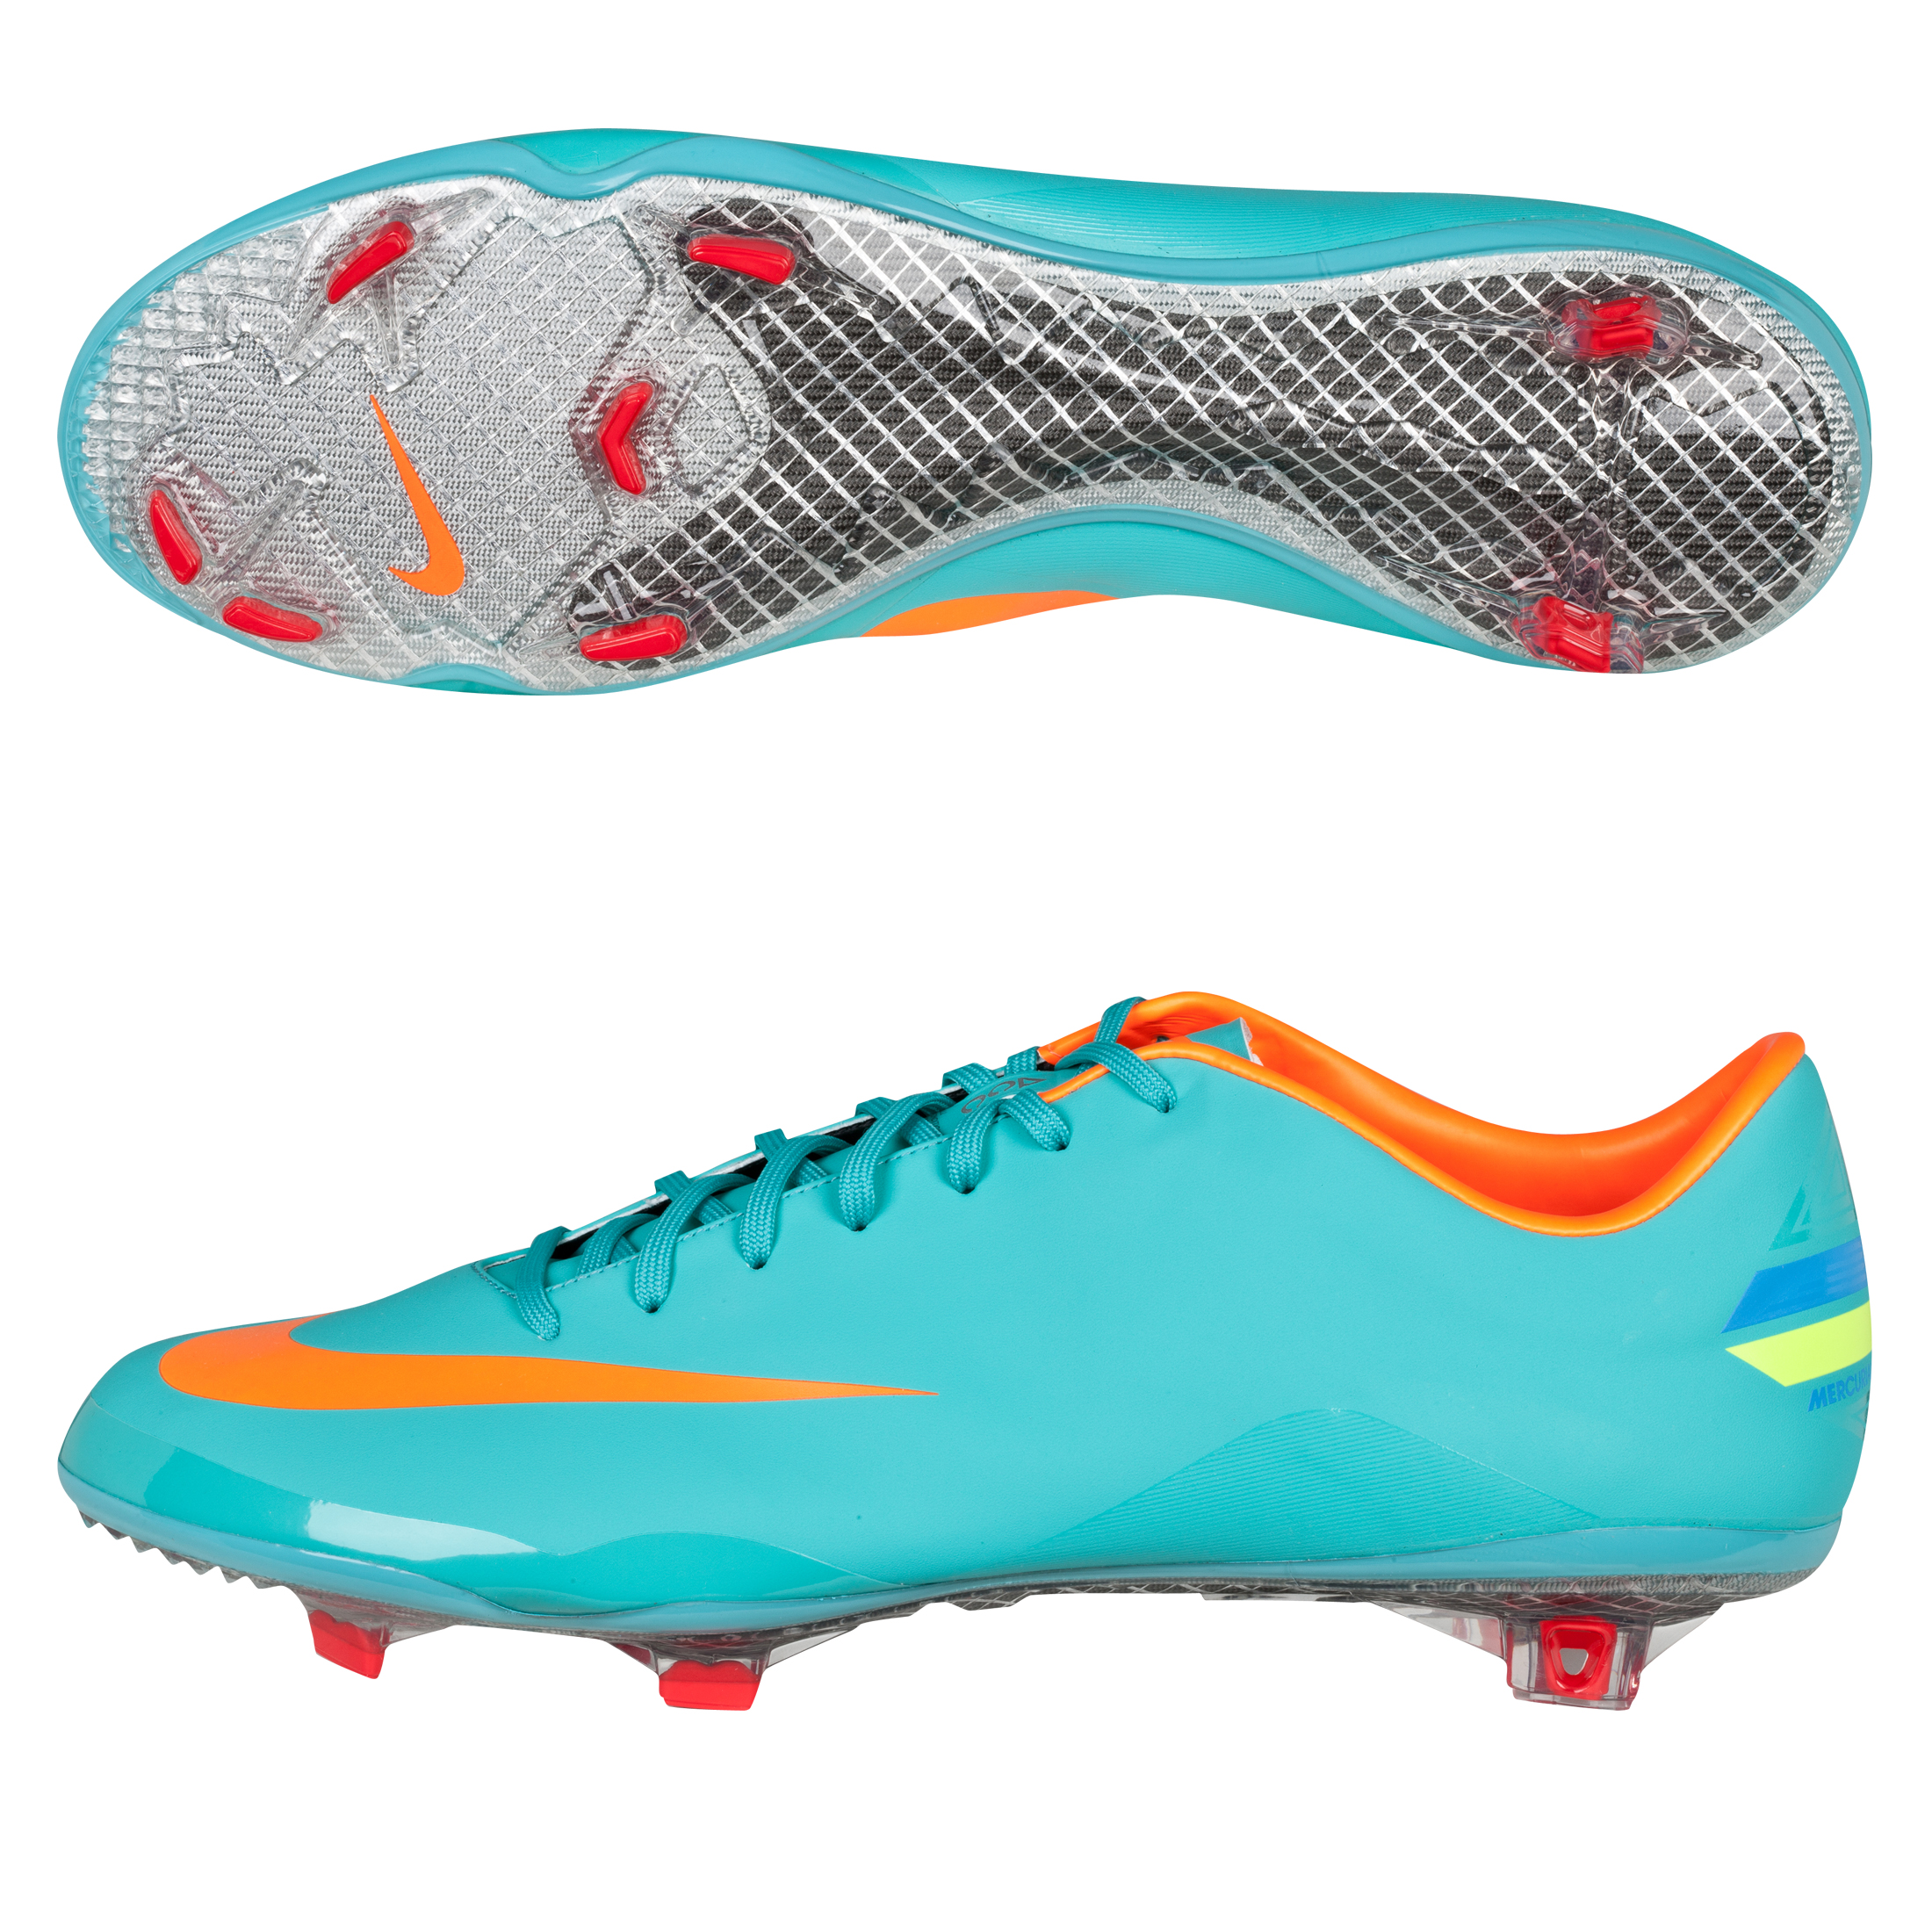 Nike Mercurial Vapor VIII Firm Ground Football Boots - Retro/Total Orange/Chilling Red